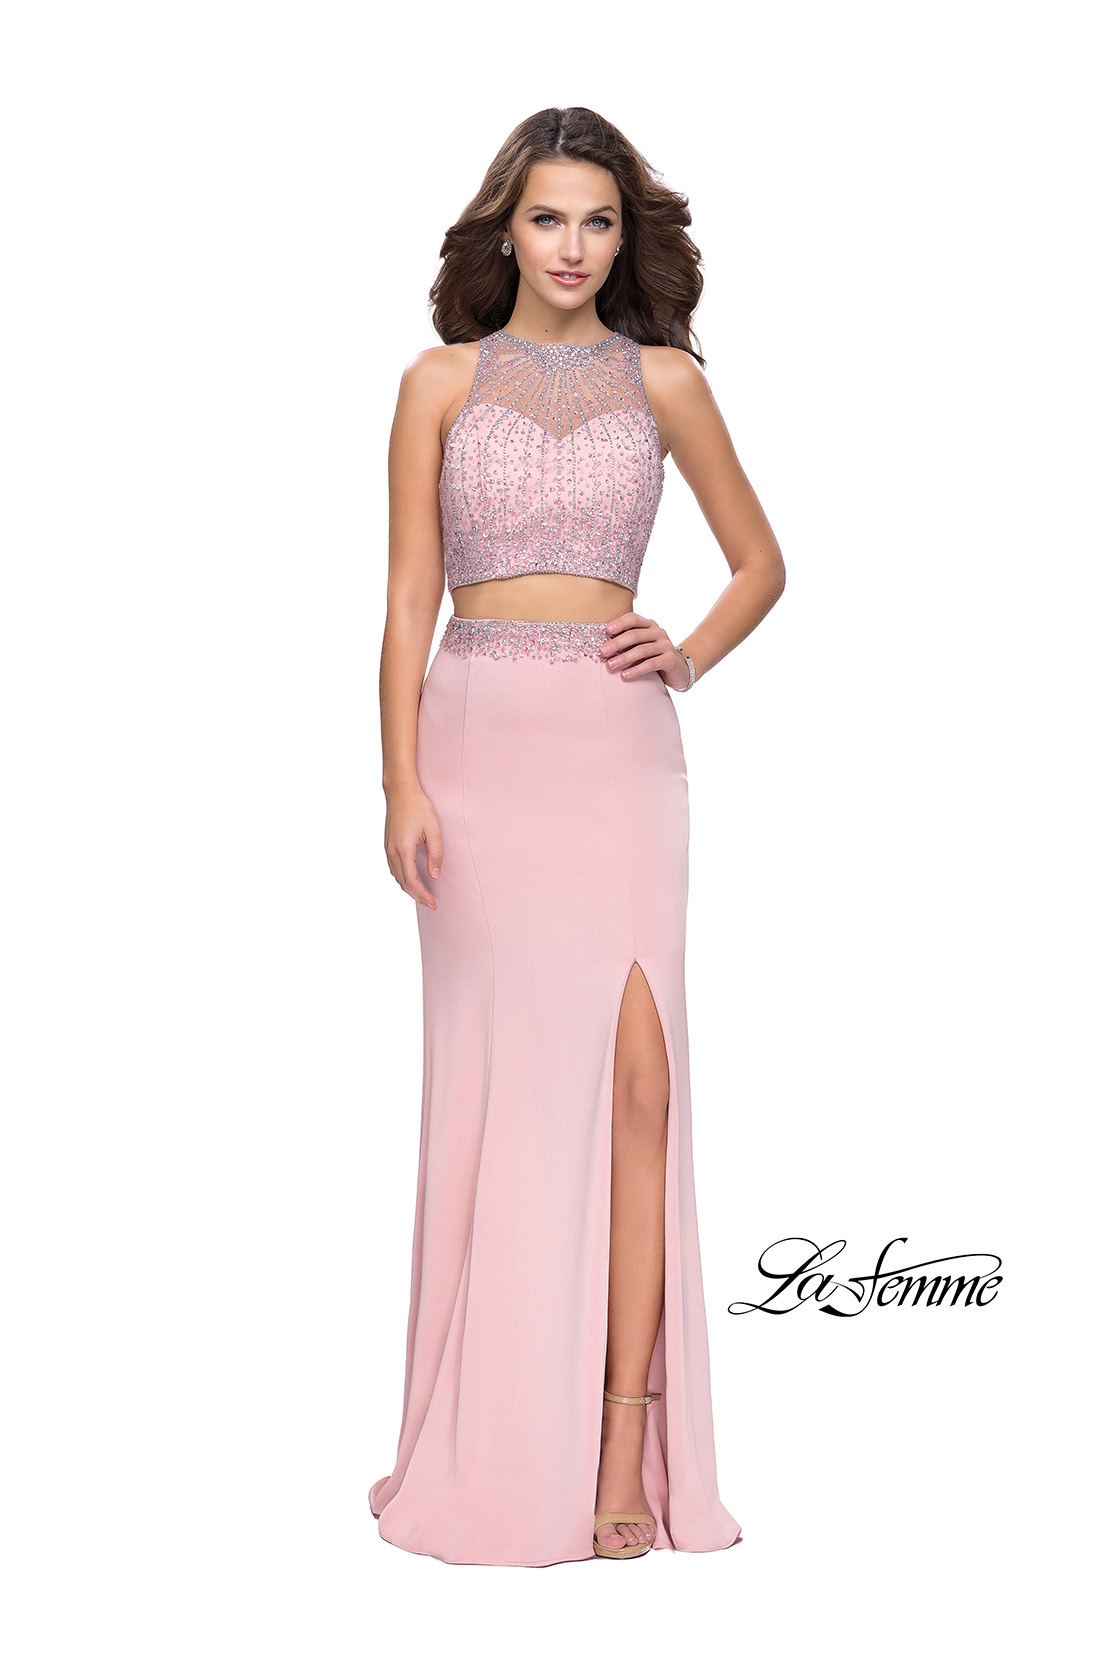 Two Piece Blush Prom Dress with Beaded Top by La Femme